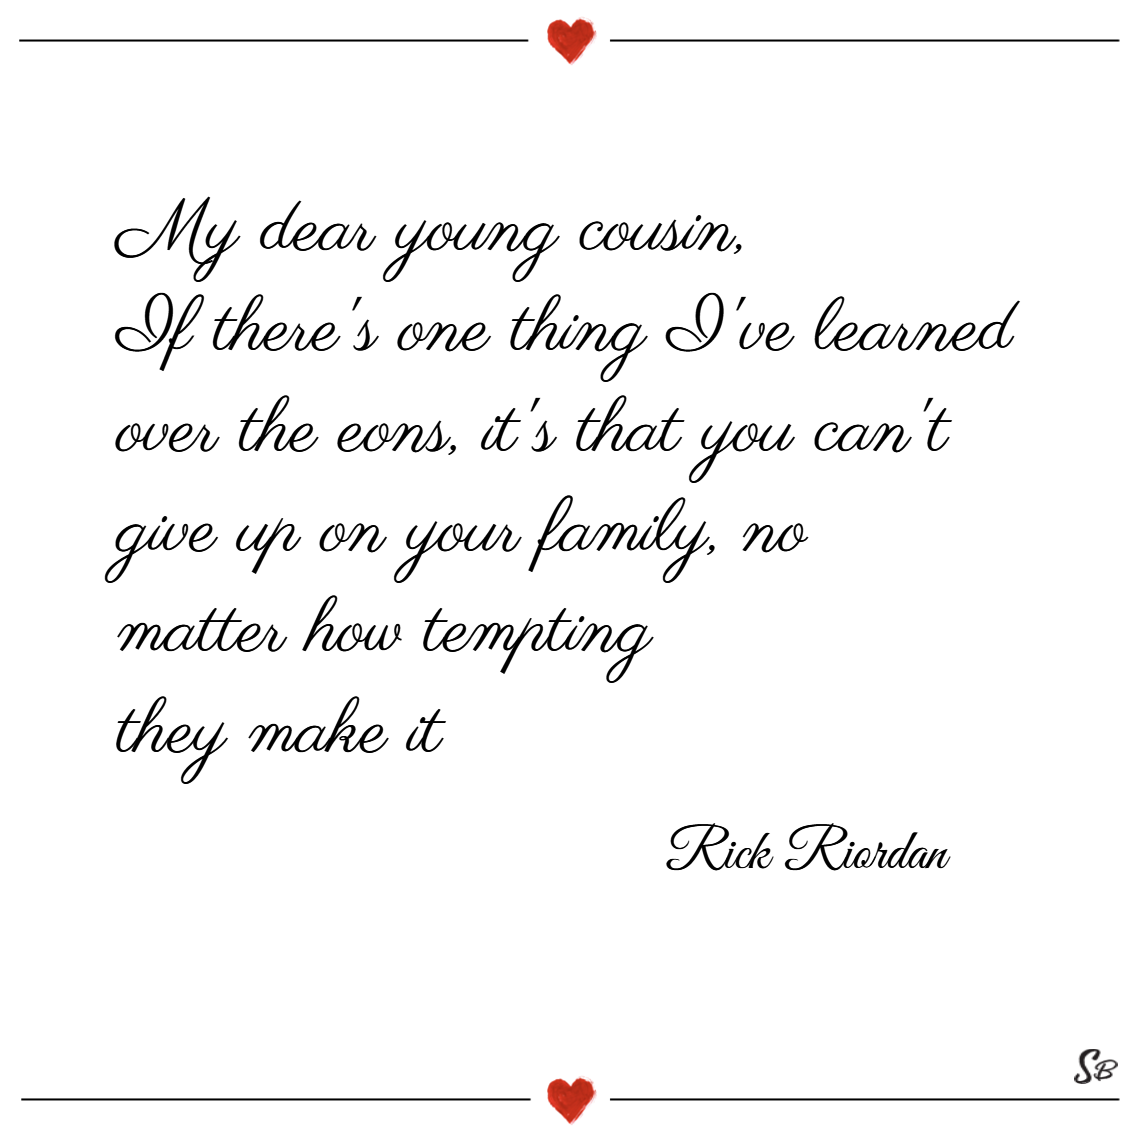 My dear young cousin, if there's one thing i've learned over the eons, it's that you can't give up on your family, no matter how tempting they make it. – rick riordan